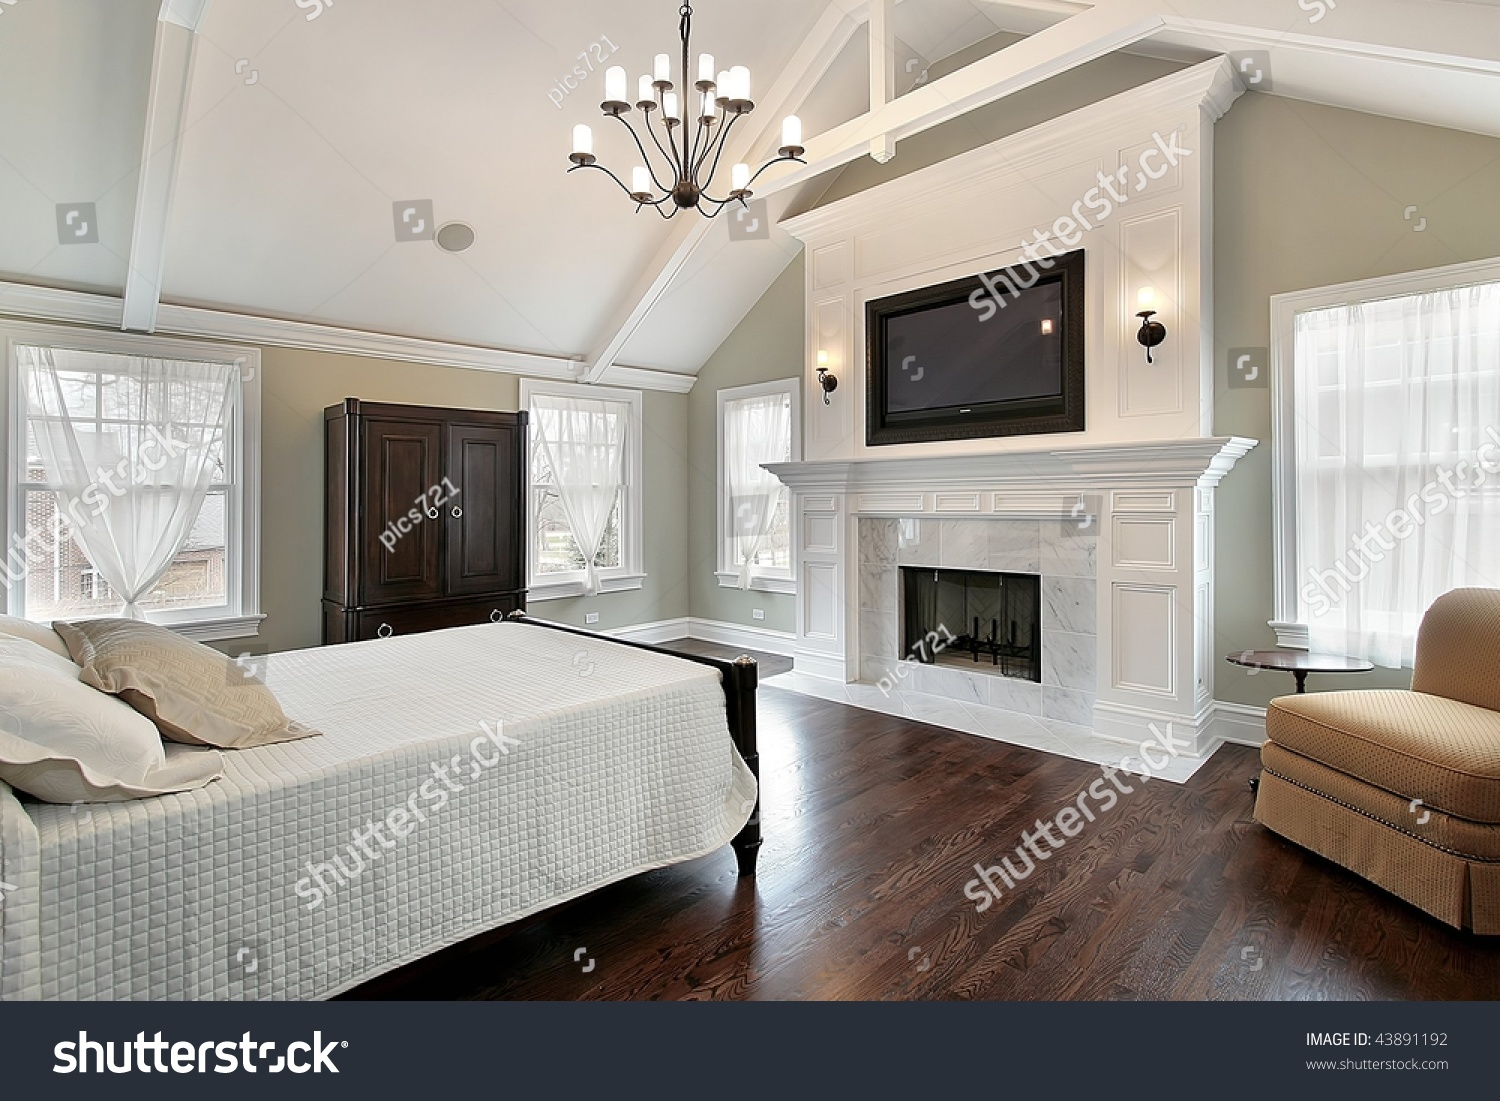 Luxury Master Bedroom With Fireplace Stock Photo 43891192 Shutterstock